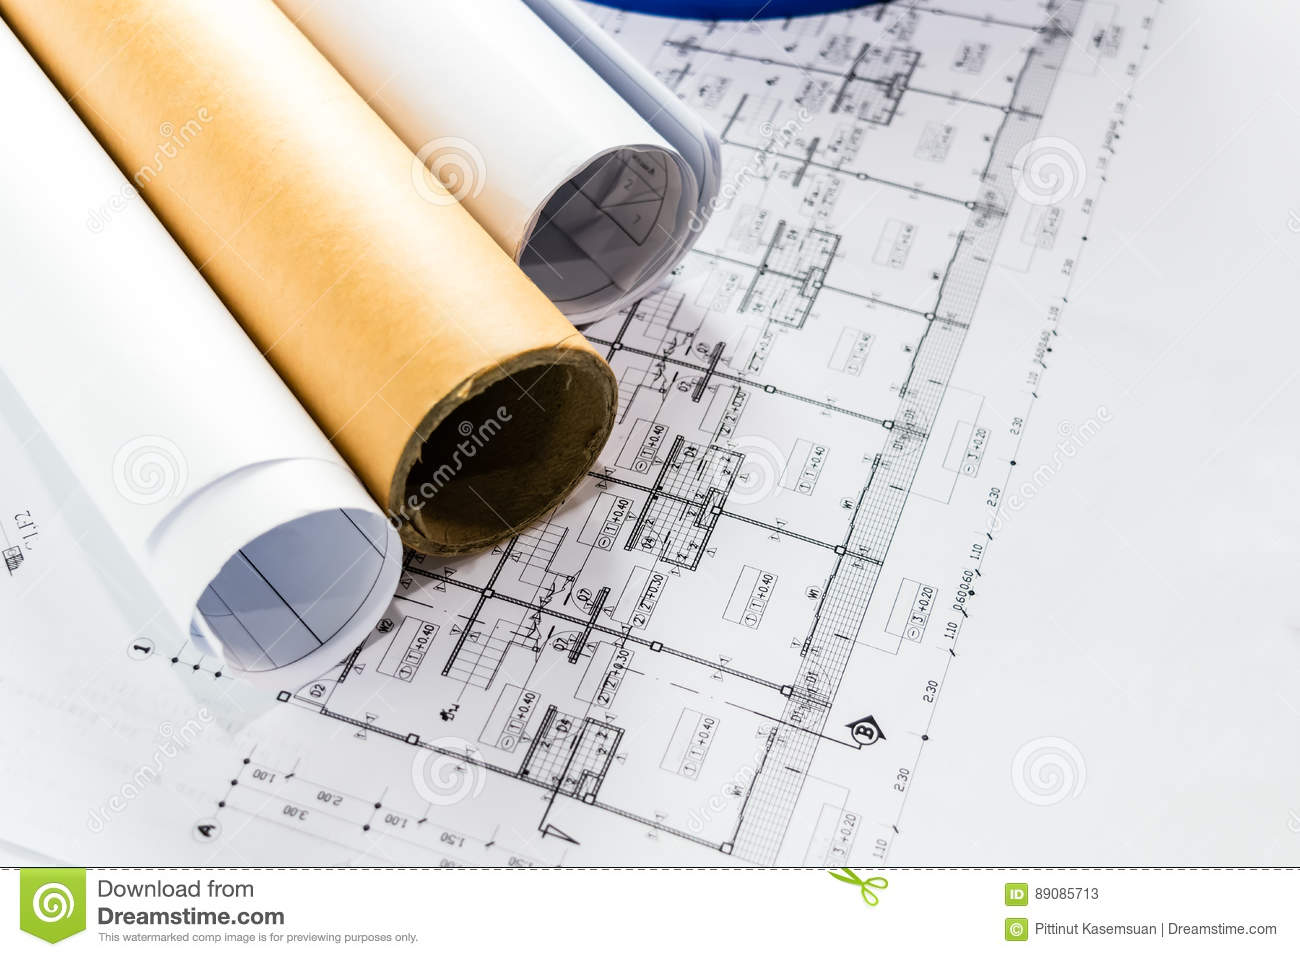 Engineering diagram blueprint paper drafting project sketch stock download engineering diagram blueprint paper drafting project sketch stock image image of home architect malvernweather